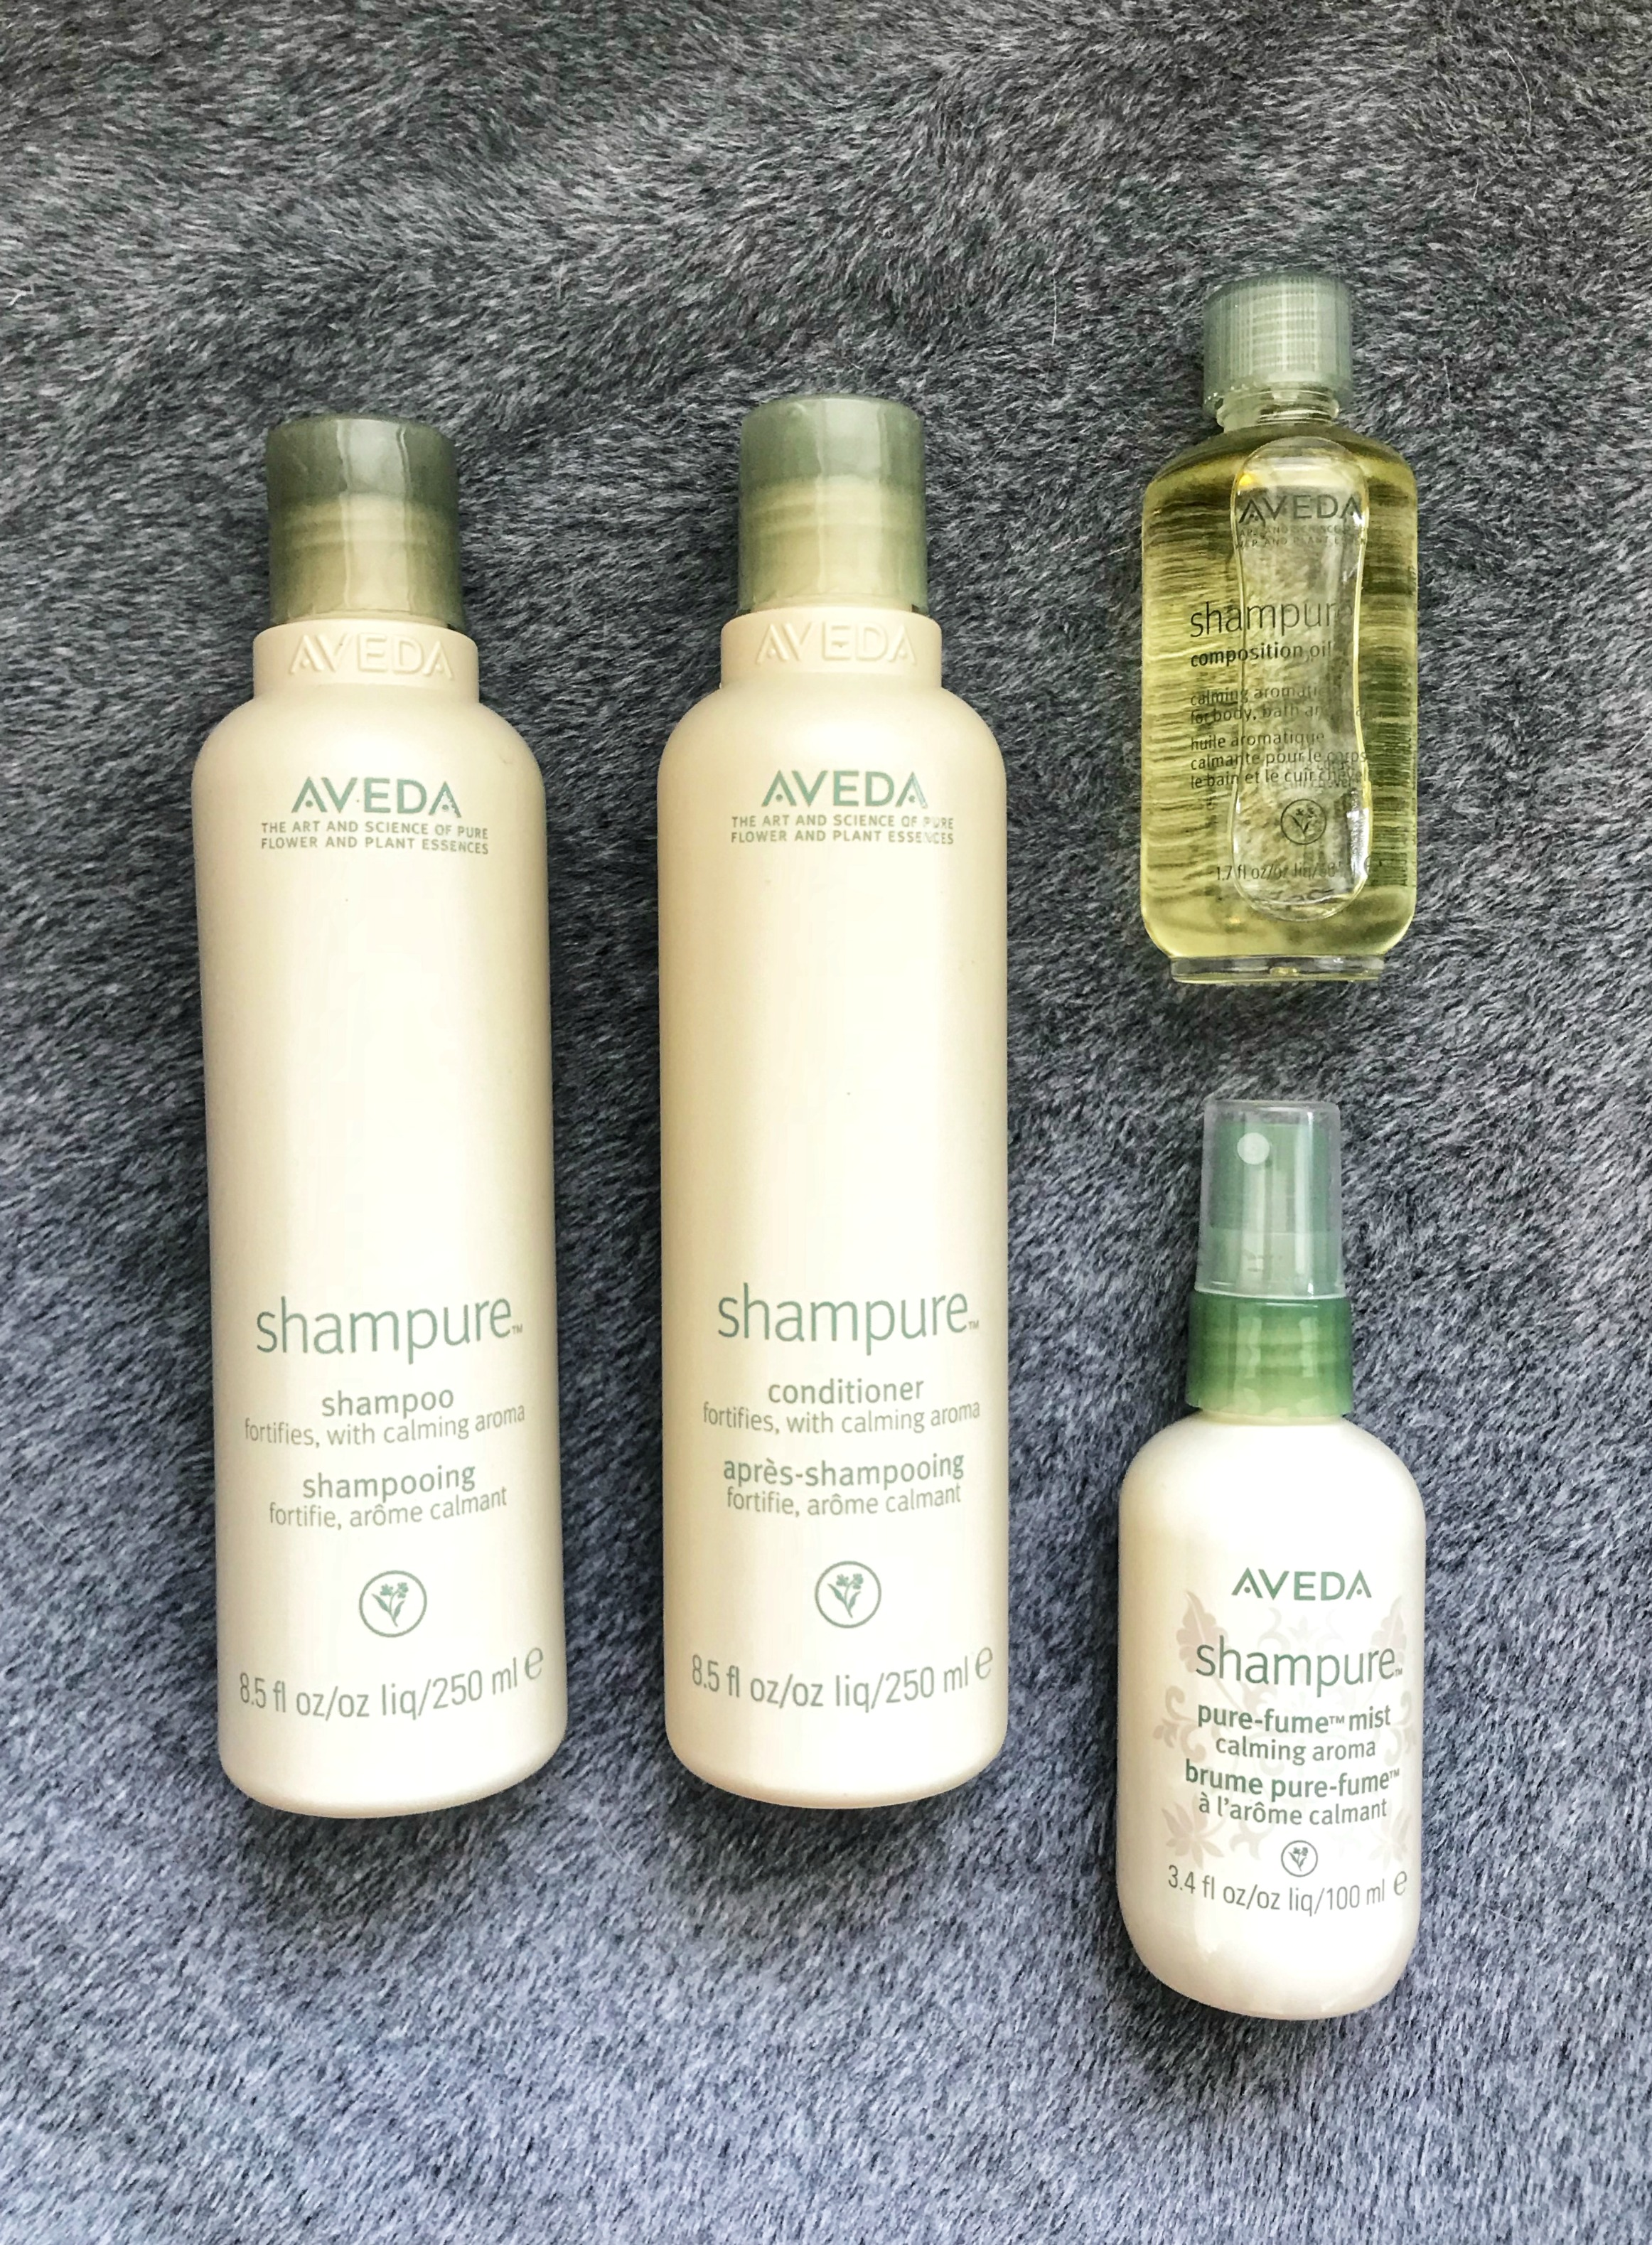 Aveda Shampure products